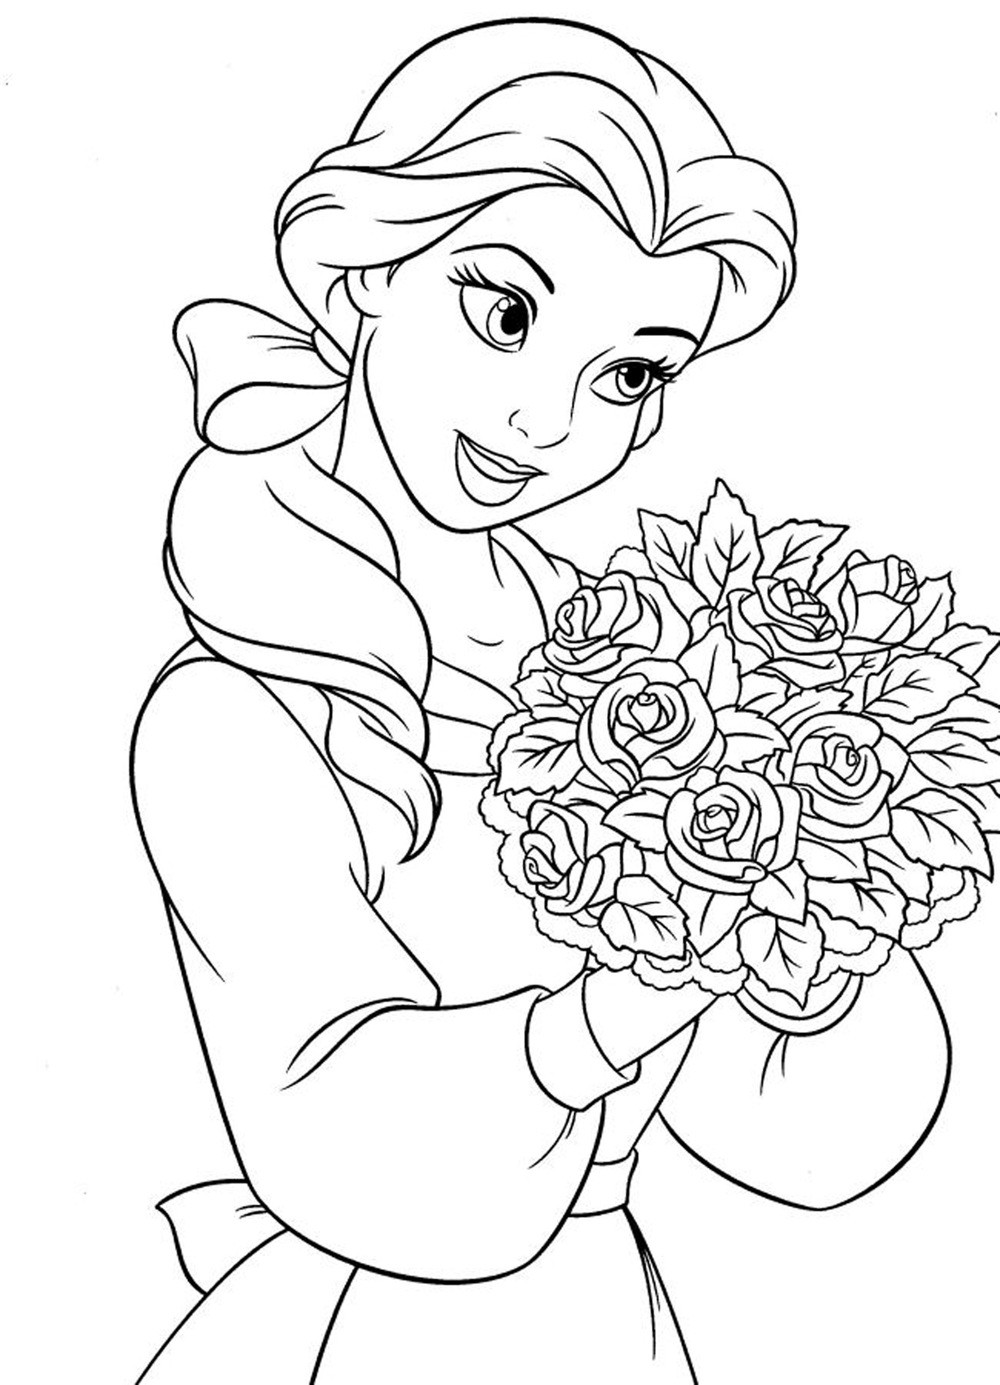 Free Printable Coloring Pages For Girls  princess coloring pages for girls Free